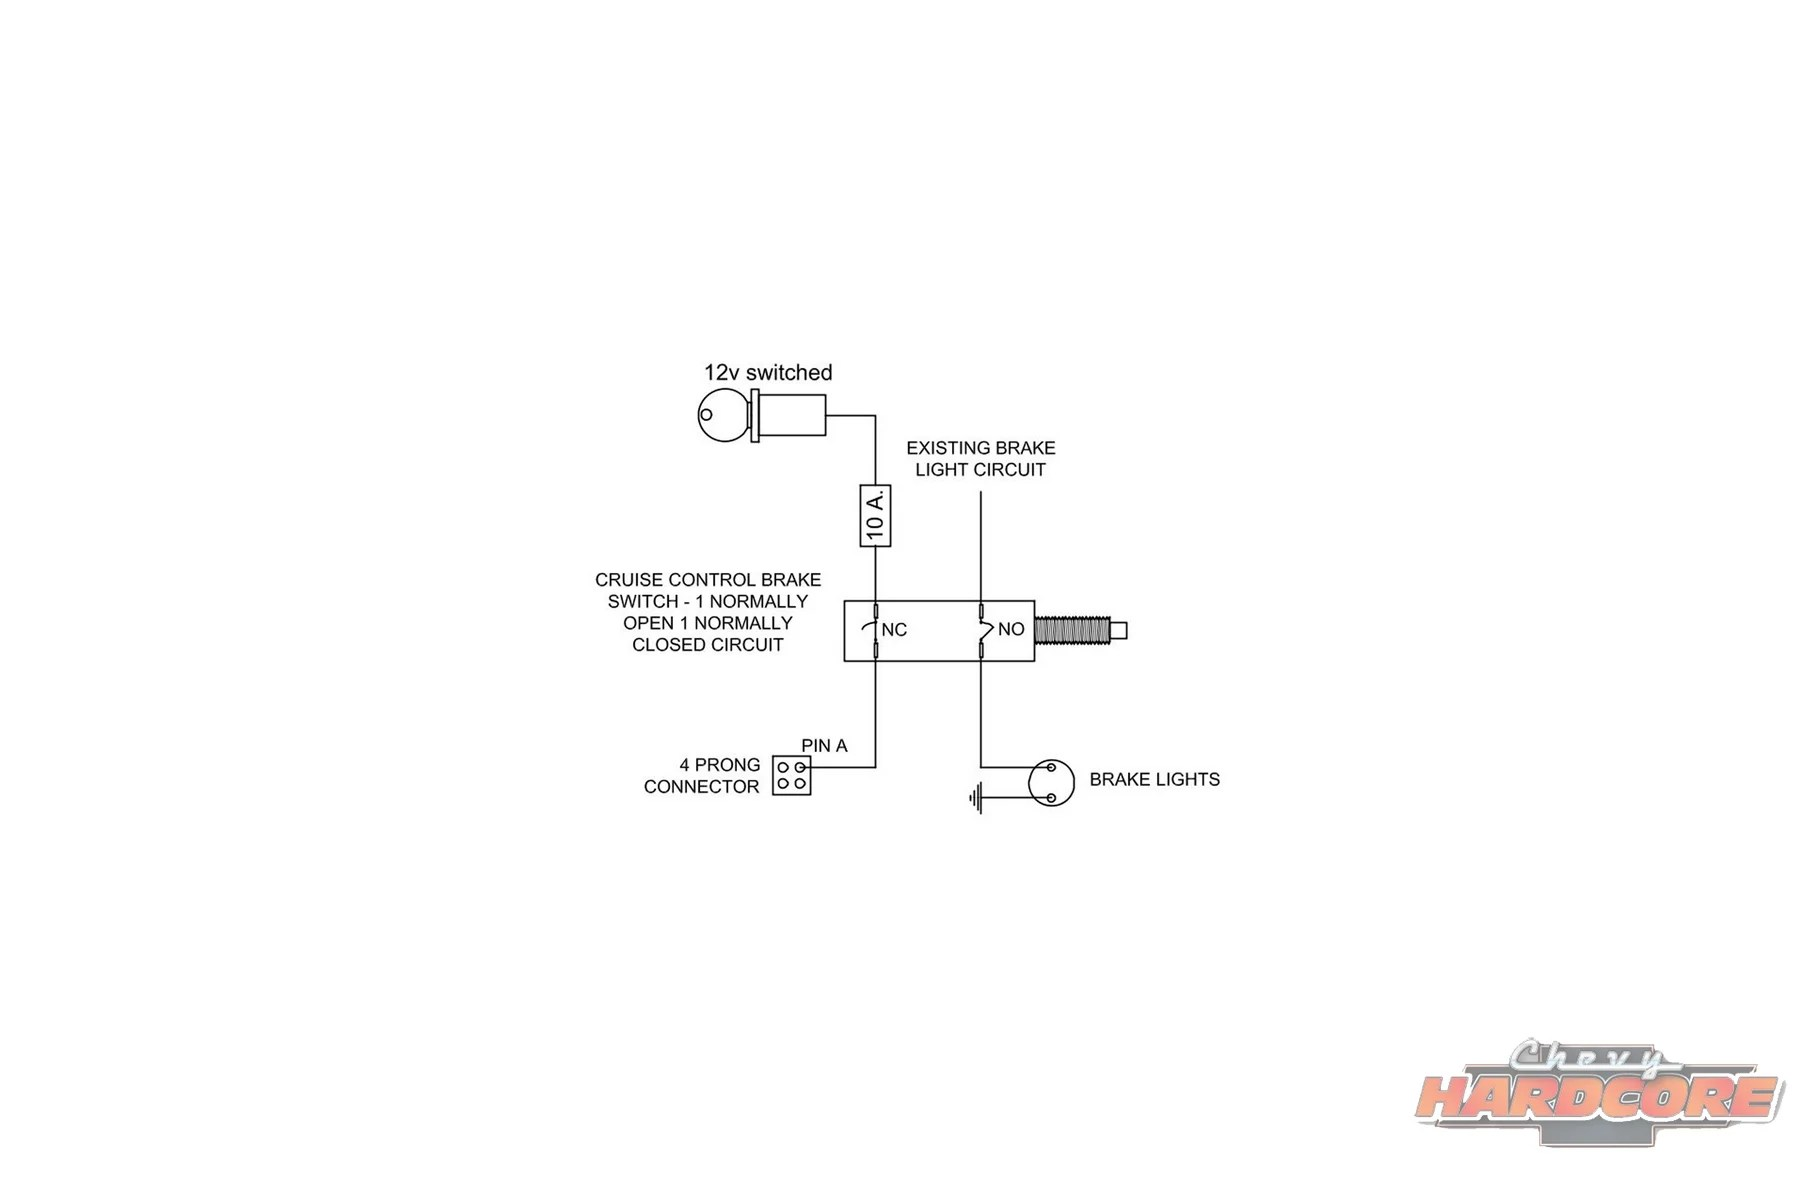 tci 700r4 lockup kit wiring diagram dog outline large overdrive options the and 4l60e debate goes on